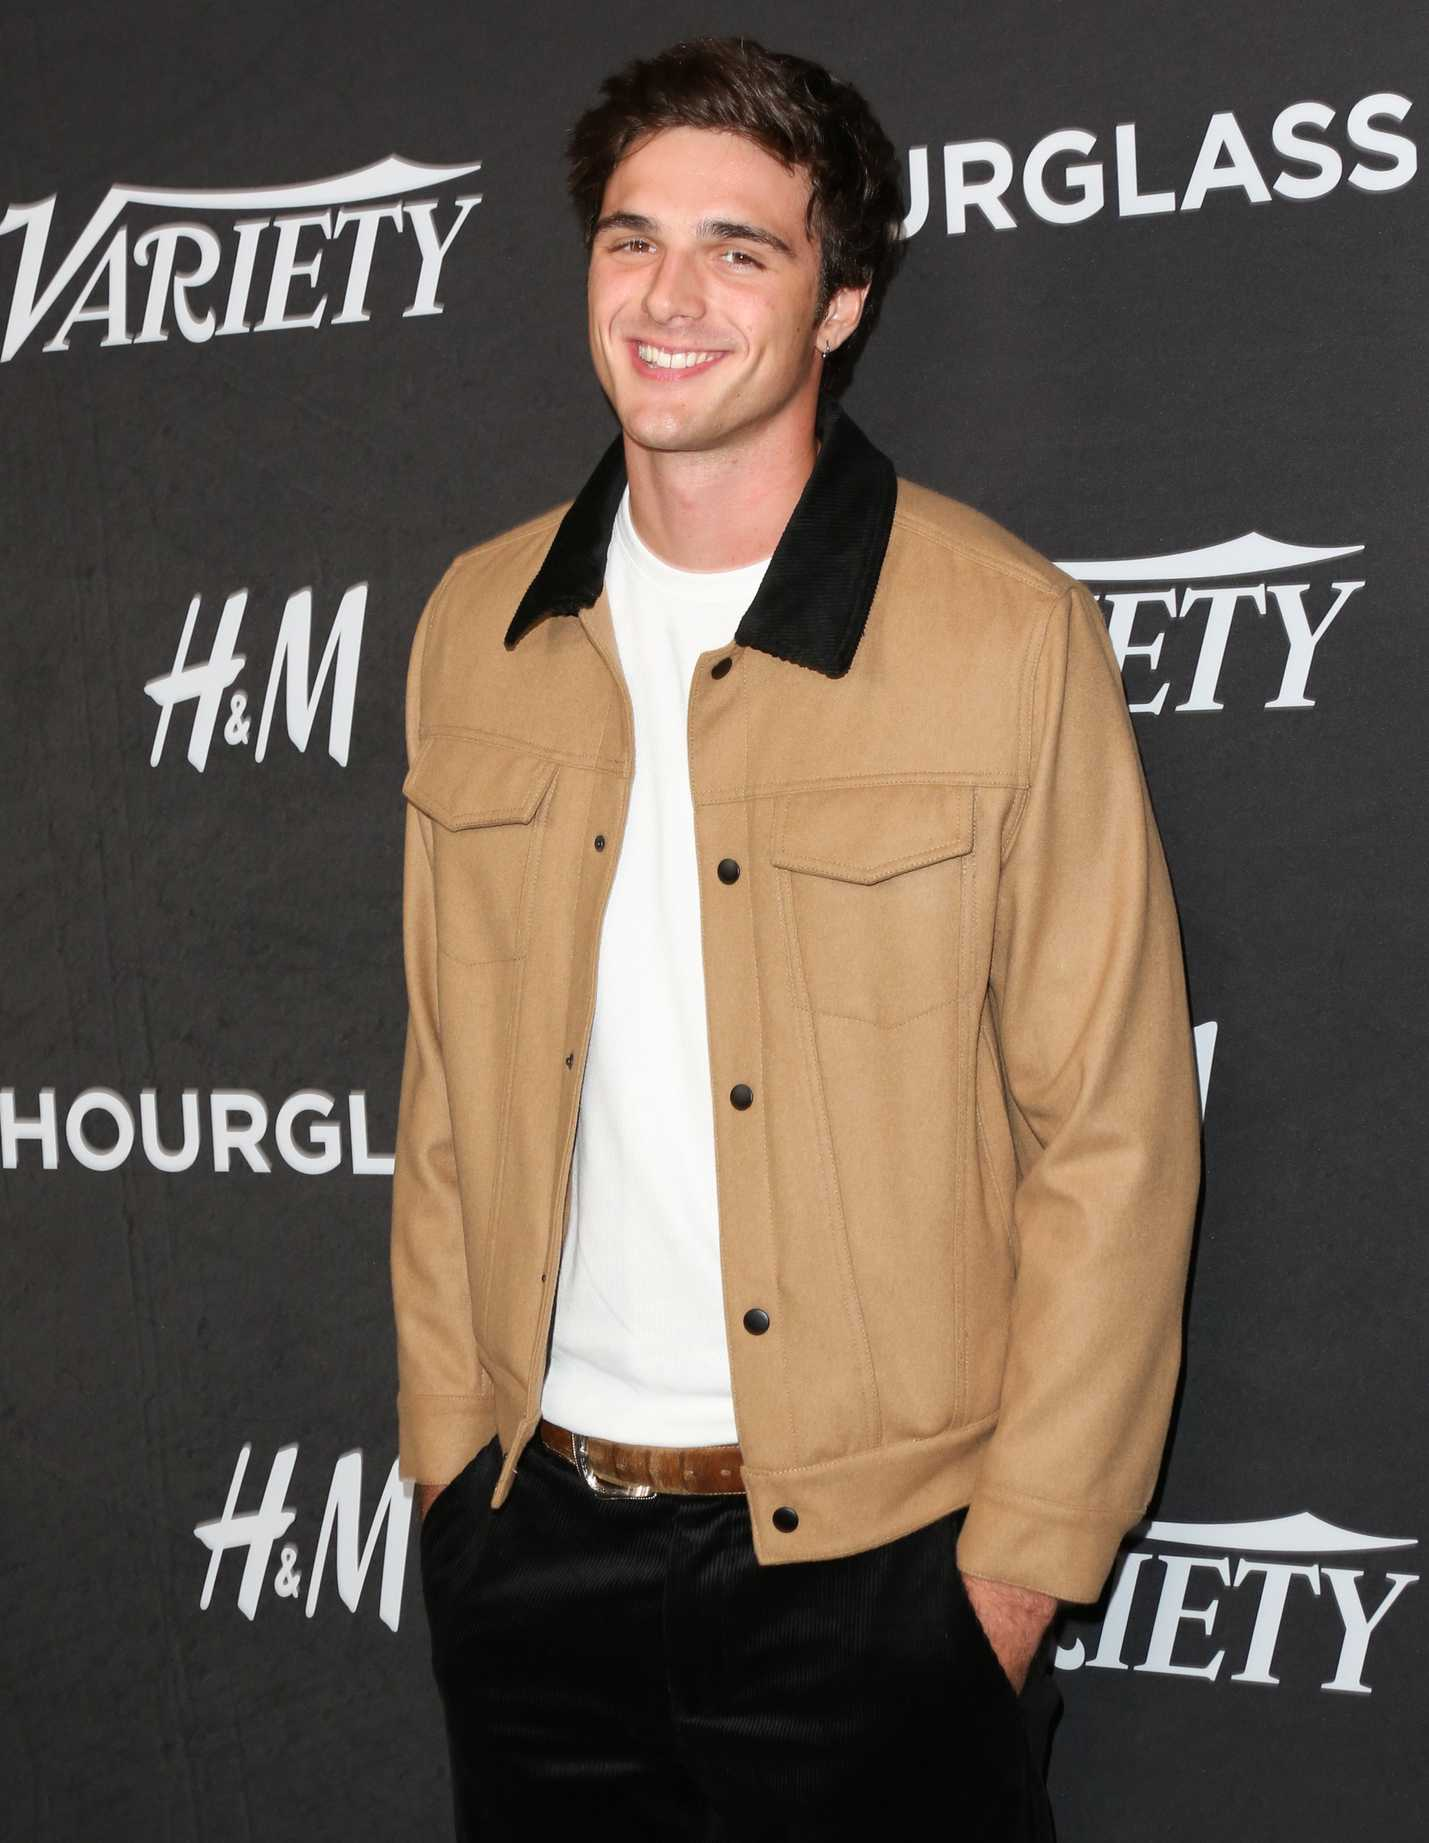 Jacob Elordi TV Shows